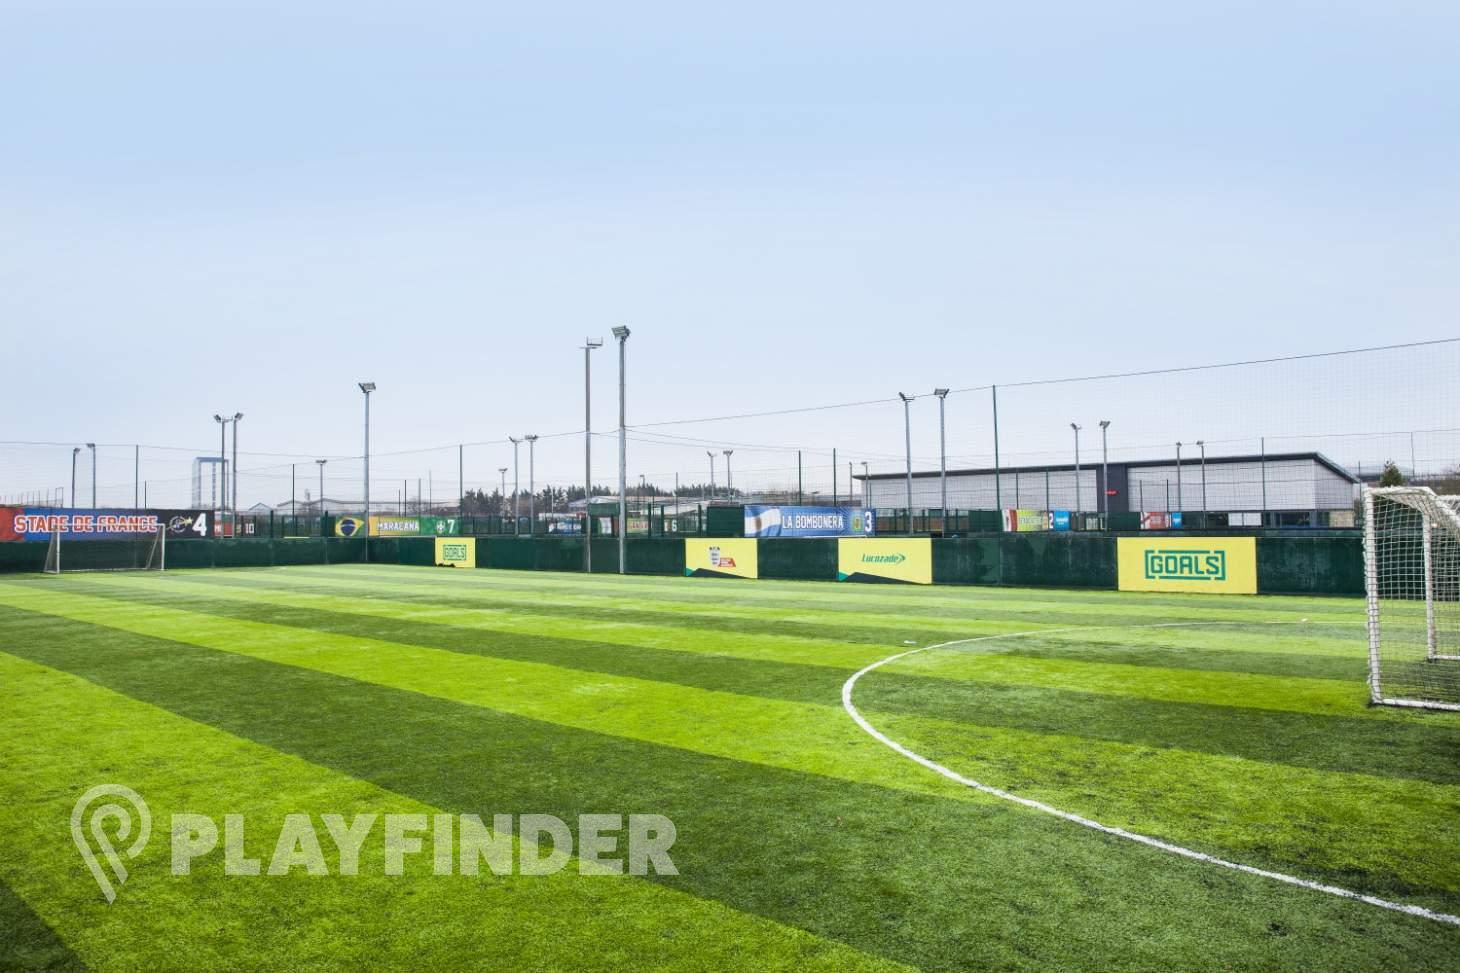 Goals Hayes 7 a side | 3G Astroturf football pitch